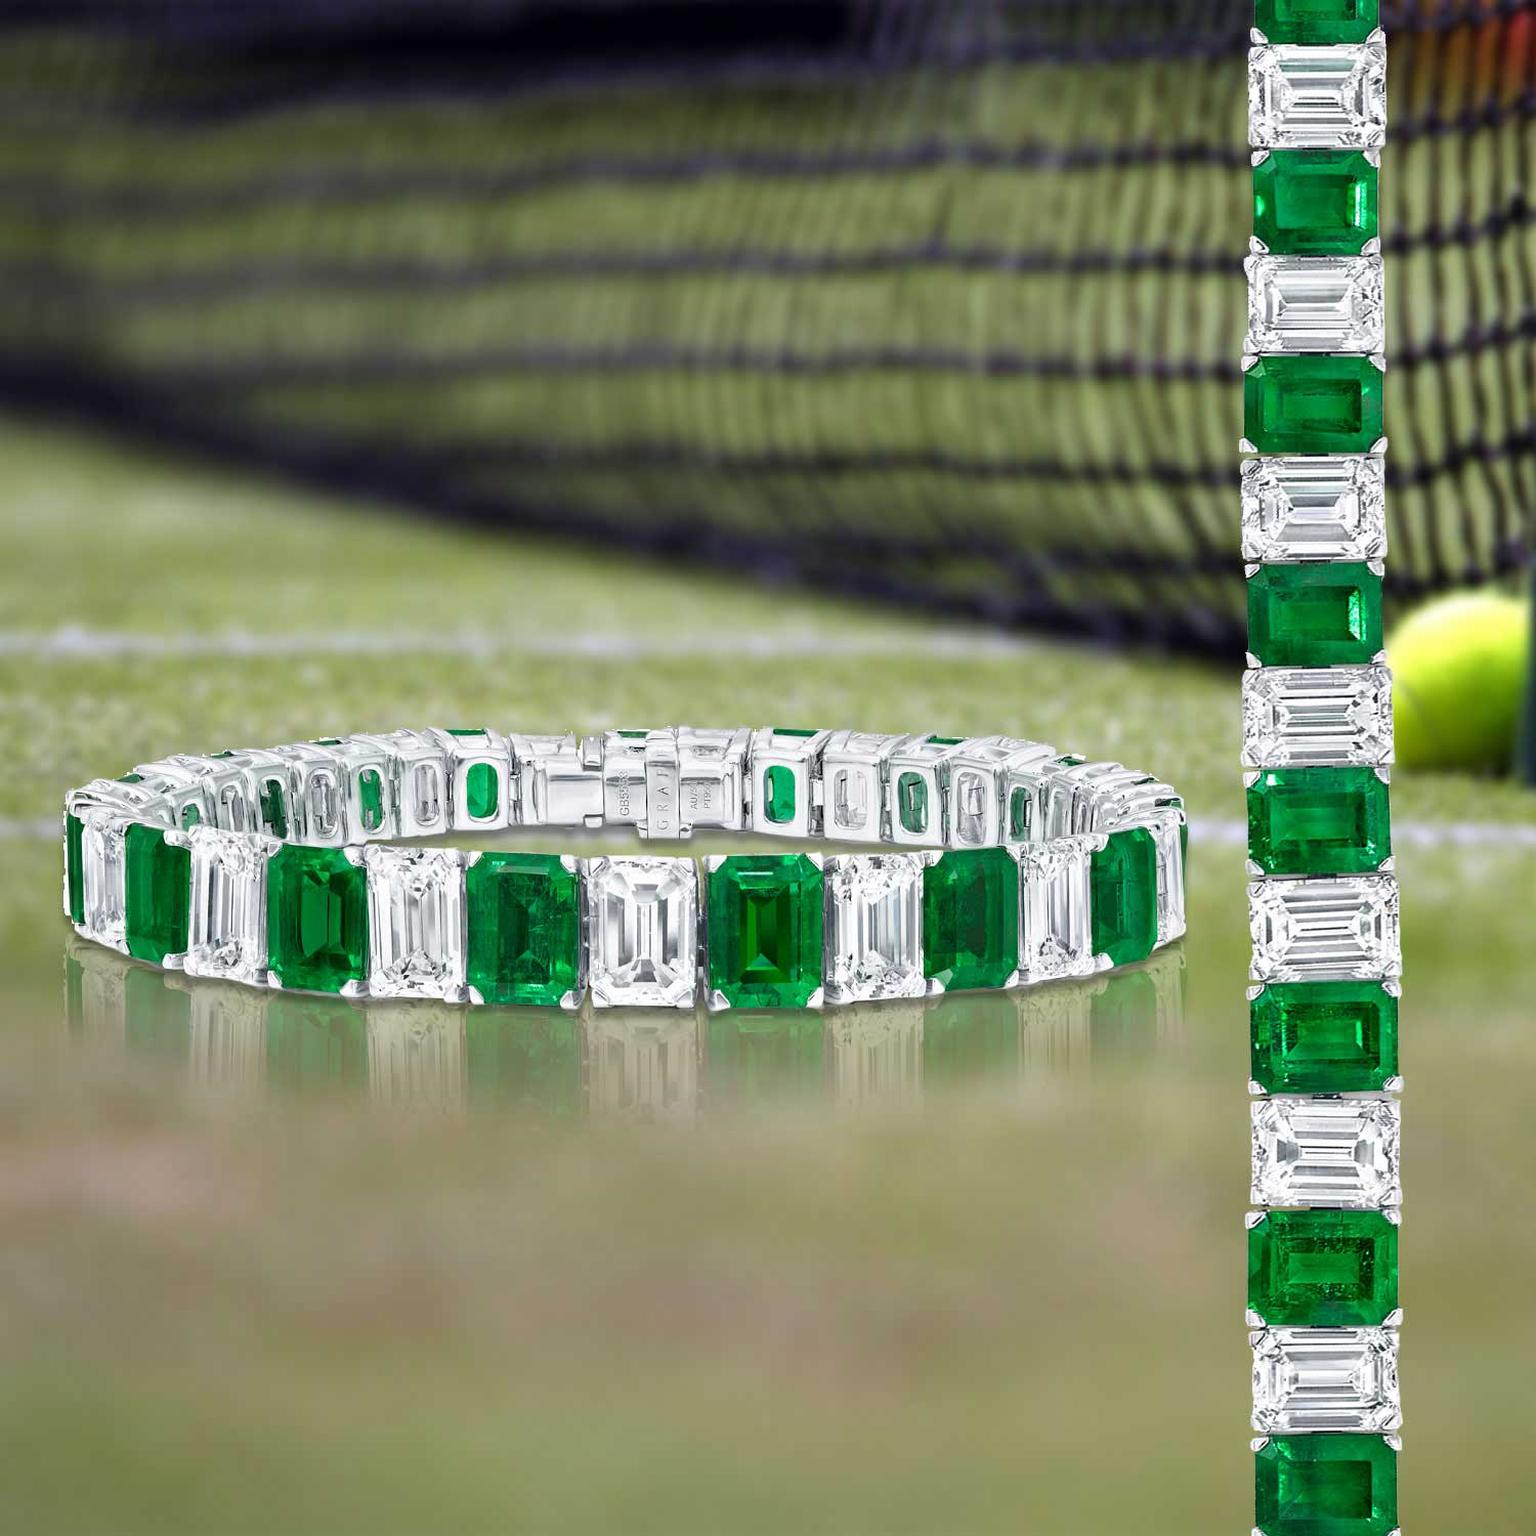 Graff Diamonds diamond and emerald tennis bracelet on court